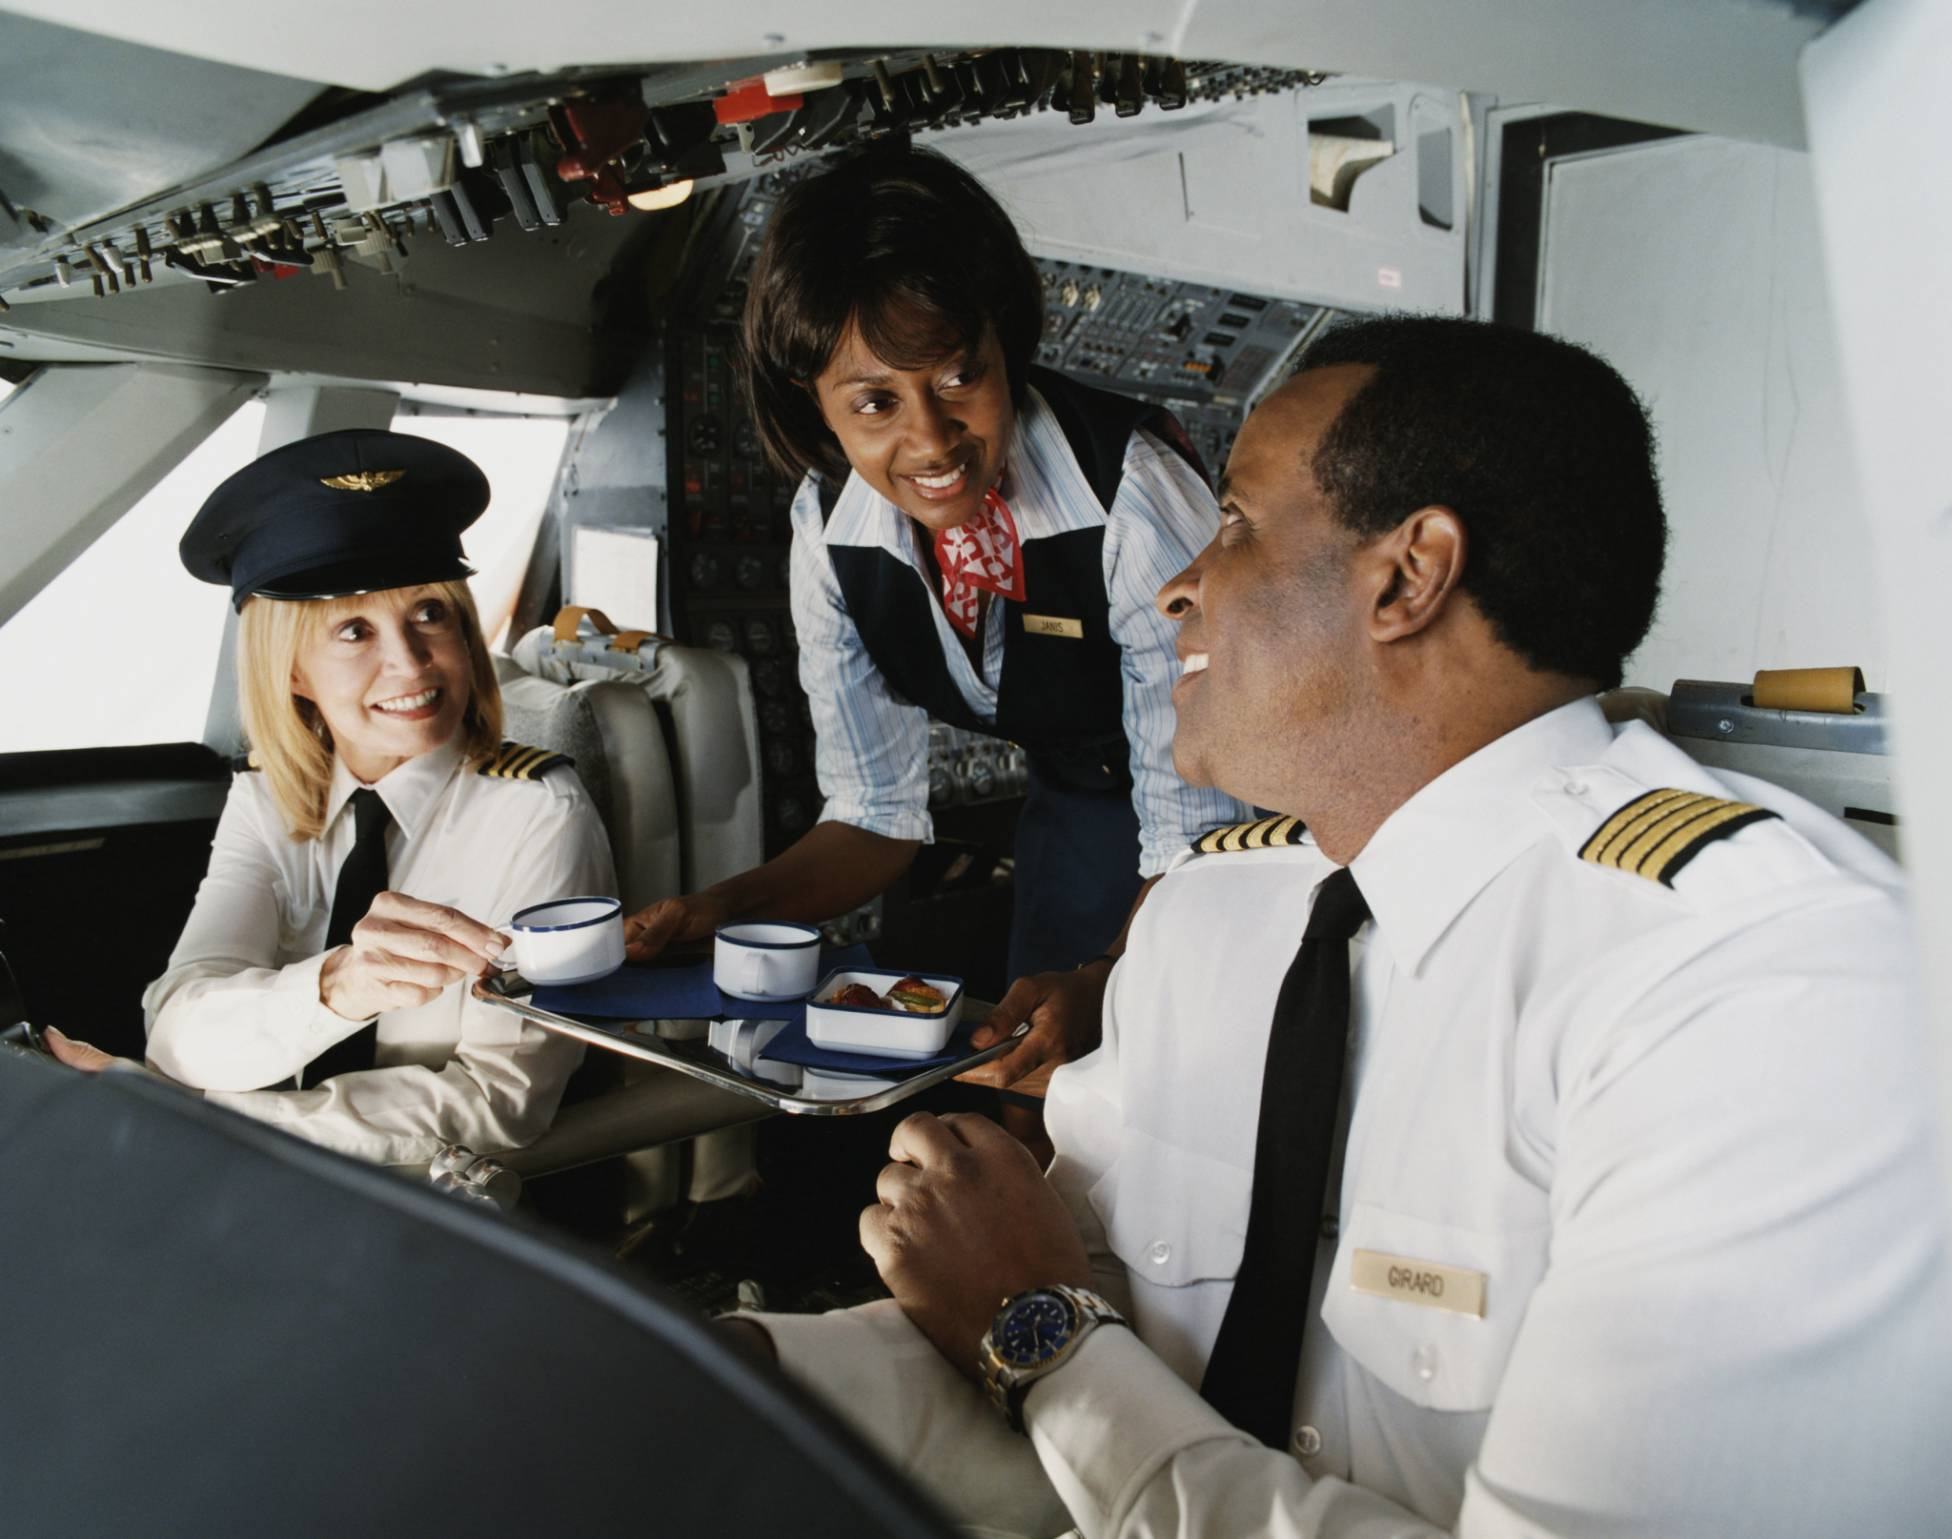 Air Hostess Serves Coffee to the Pilots in the Cockpit